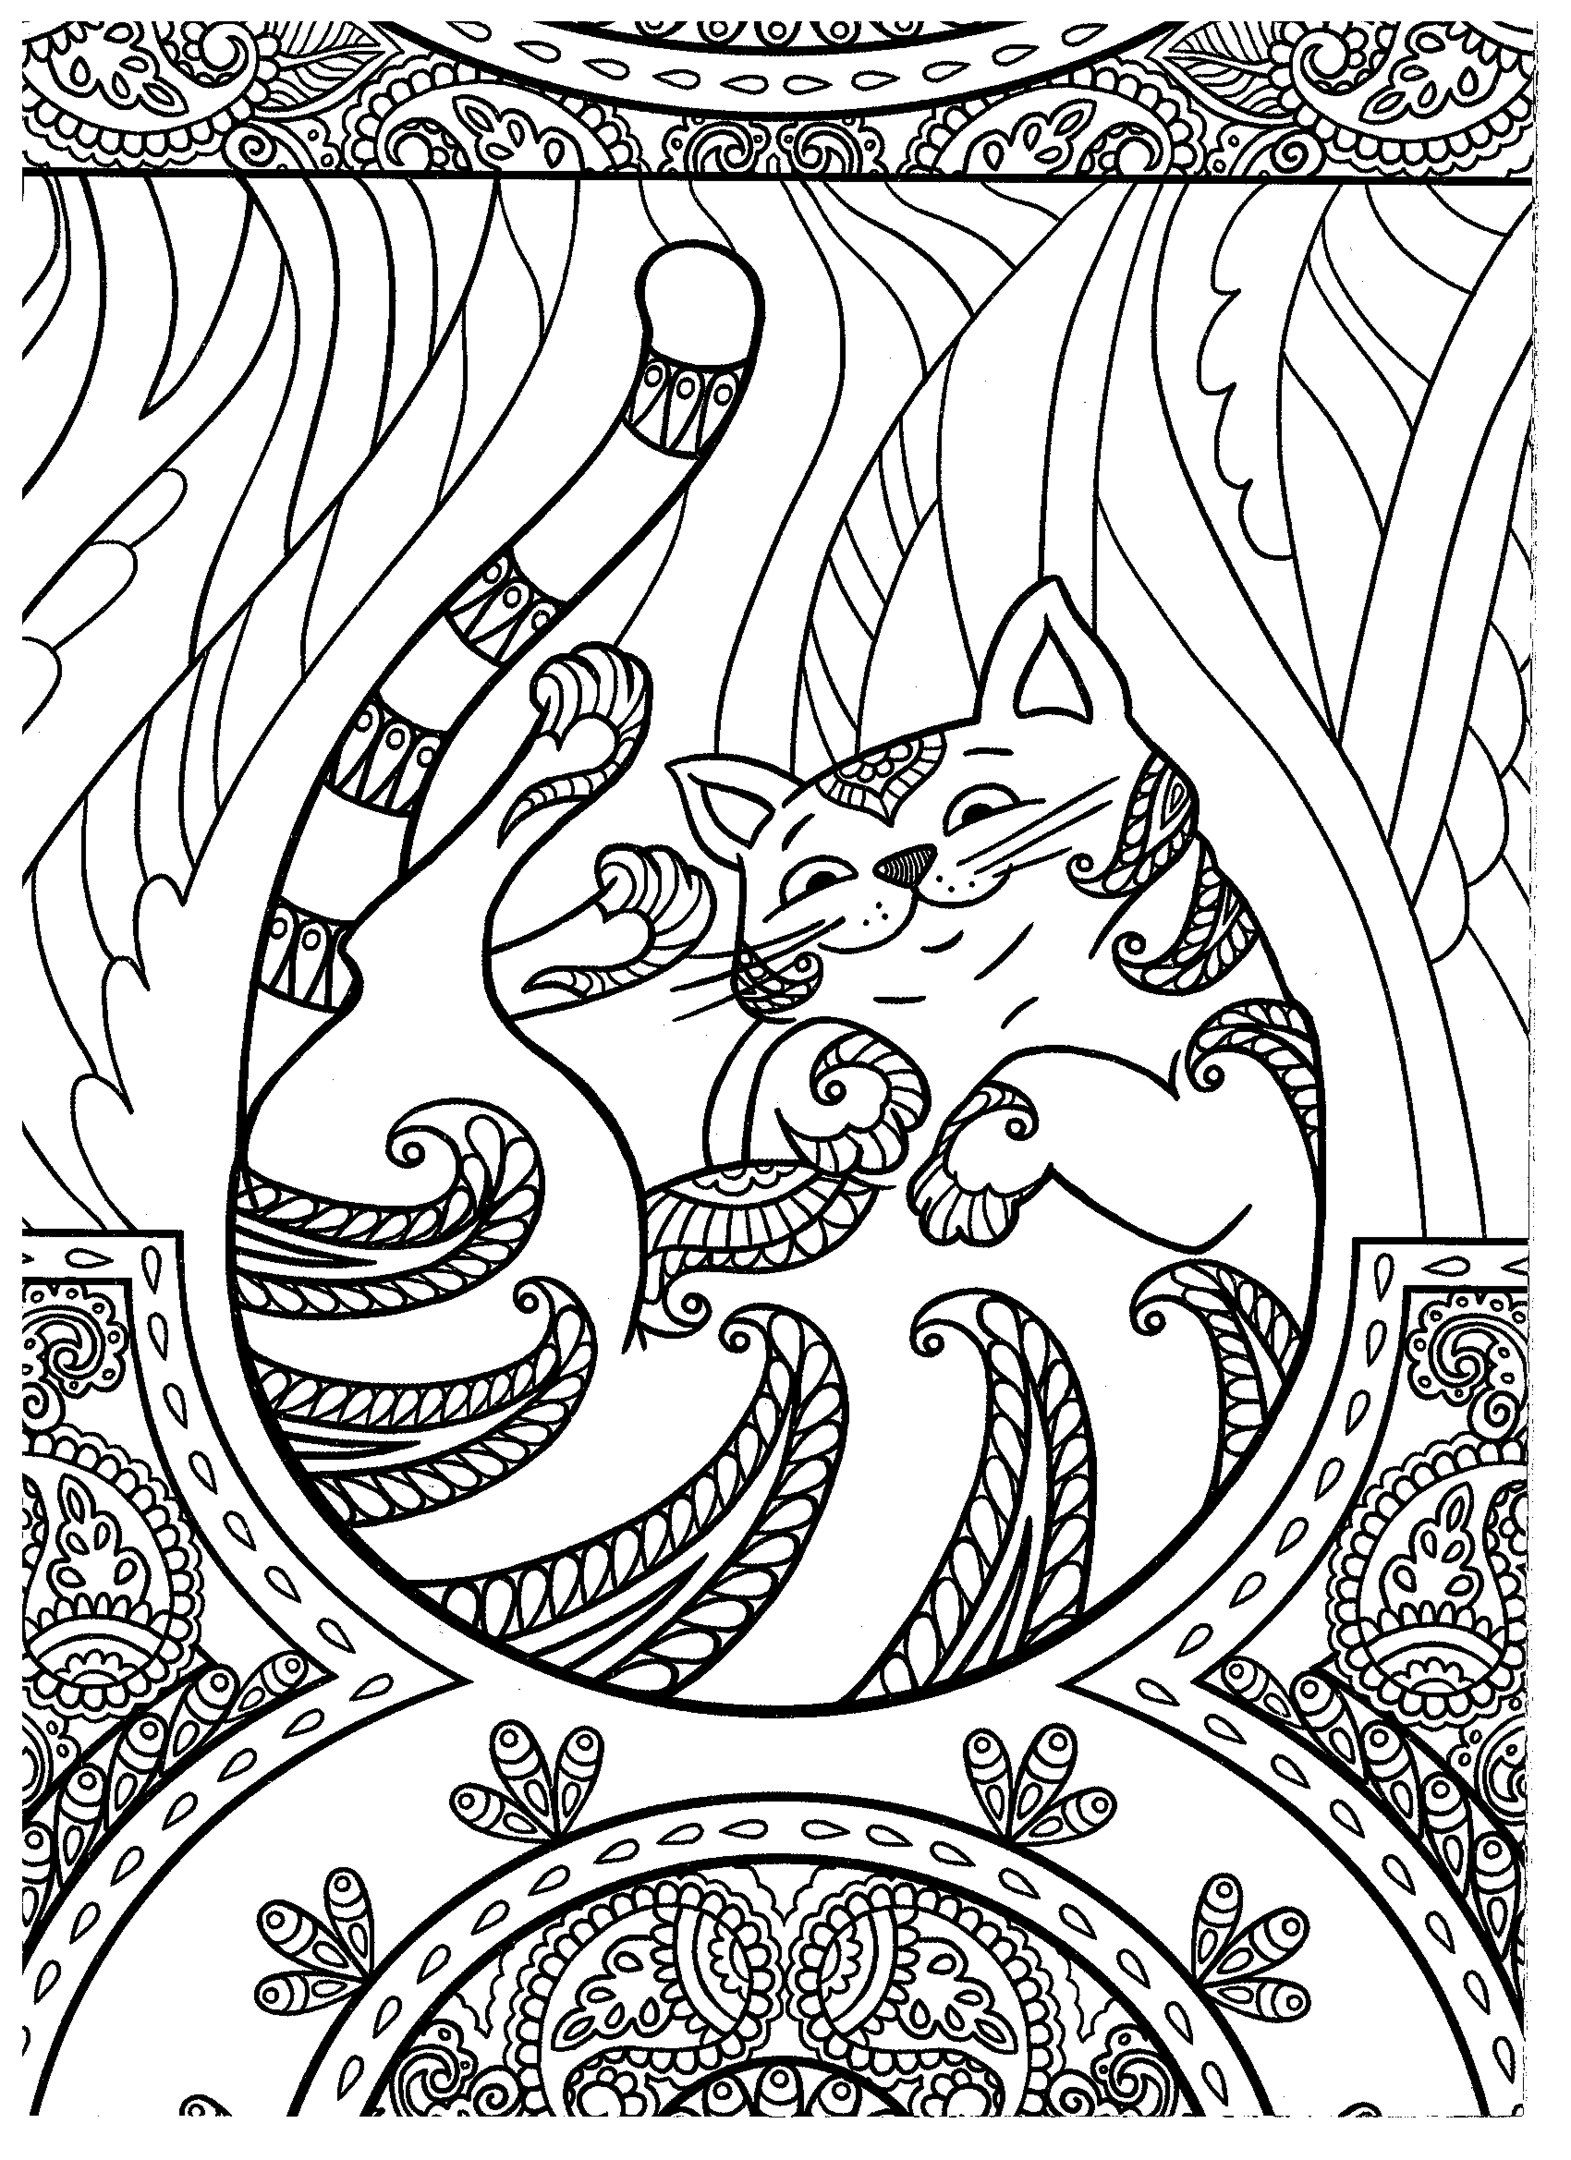 Kids Coloring Pages, Books